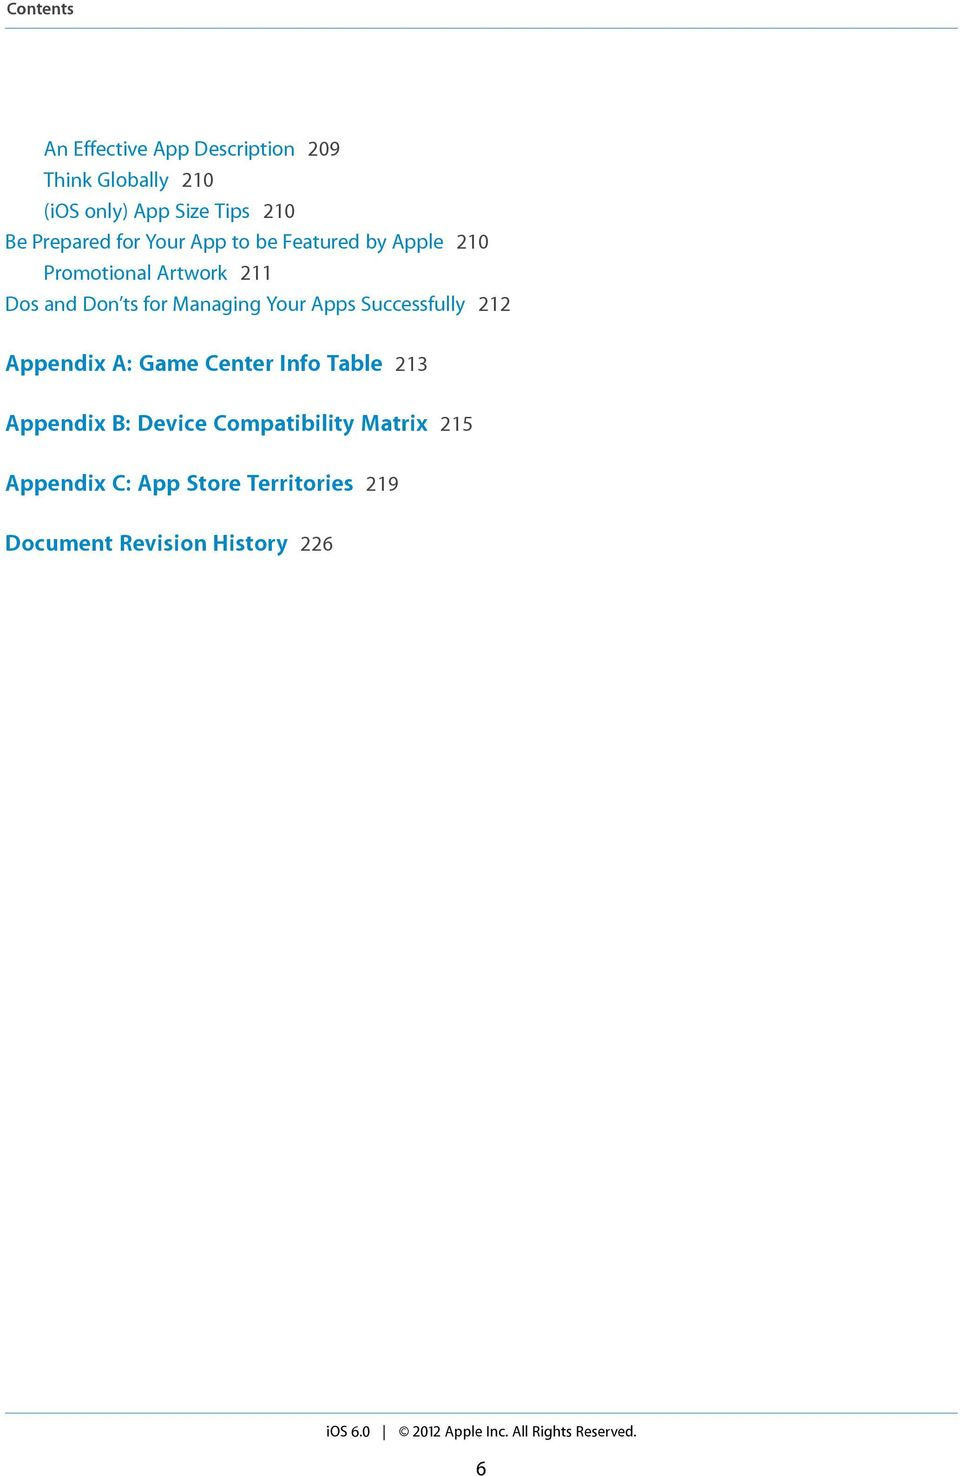 Itunes connect developer guide pdf managing your apps successfully 212 appendix a game center info table 213 appendix b fandeluxe Image collections